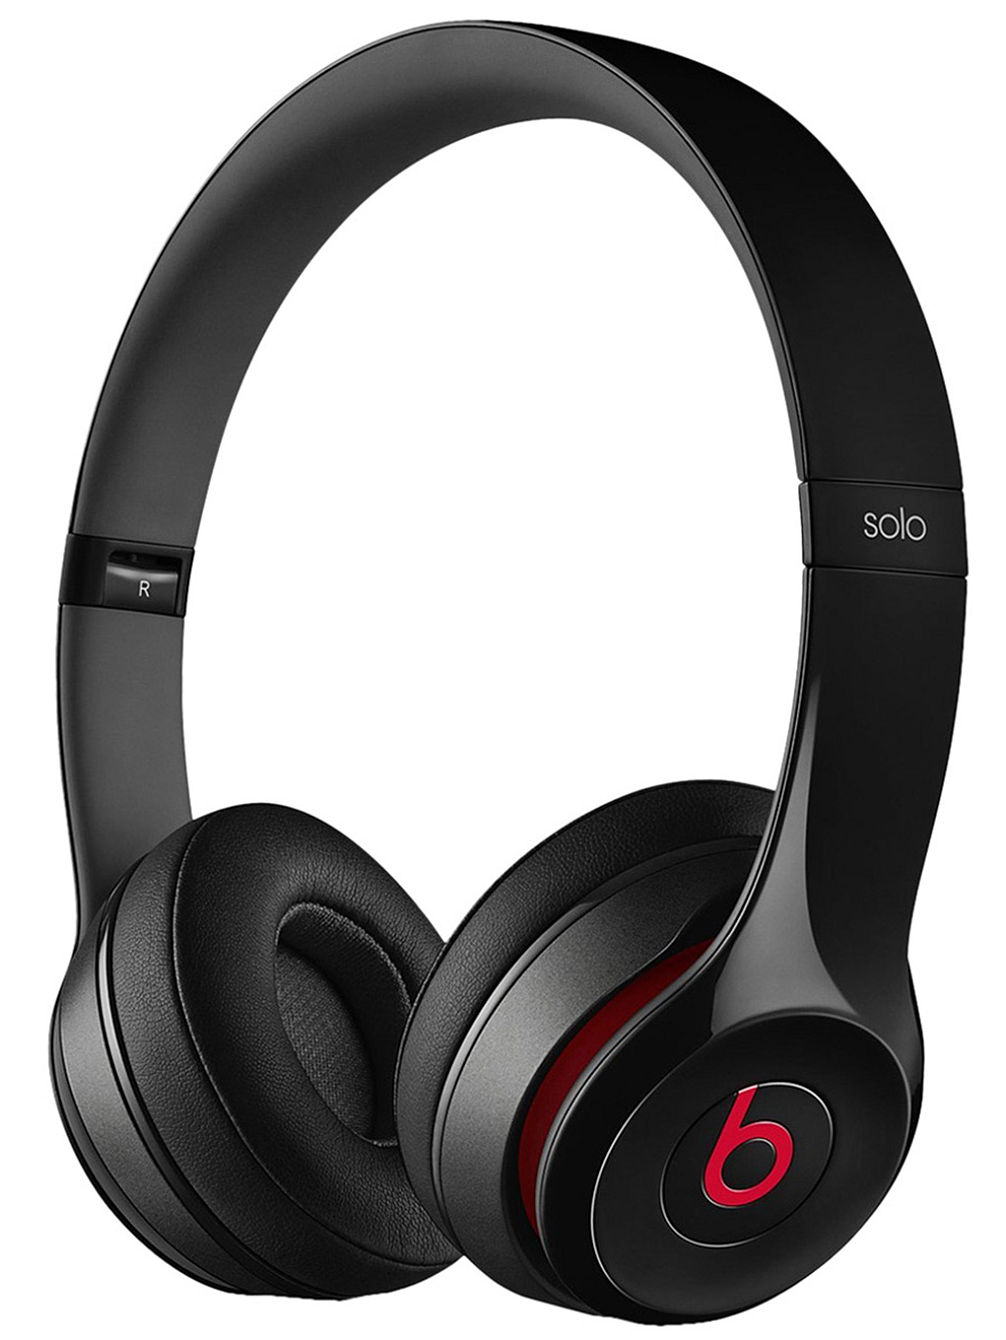 Solo 2 Black Headphones